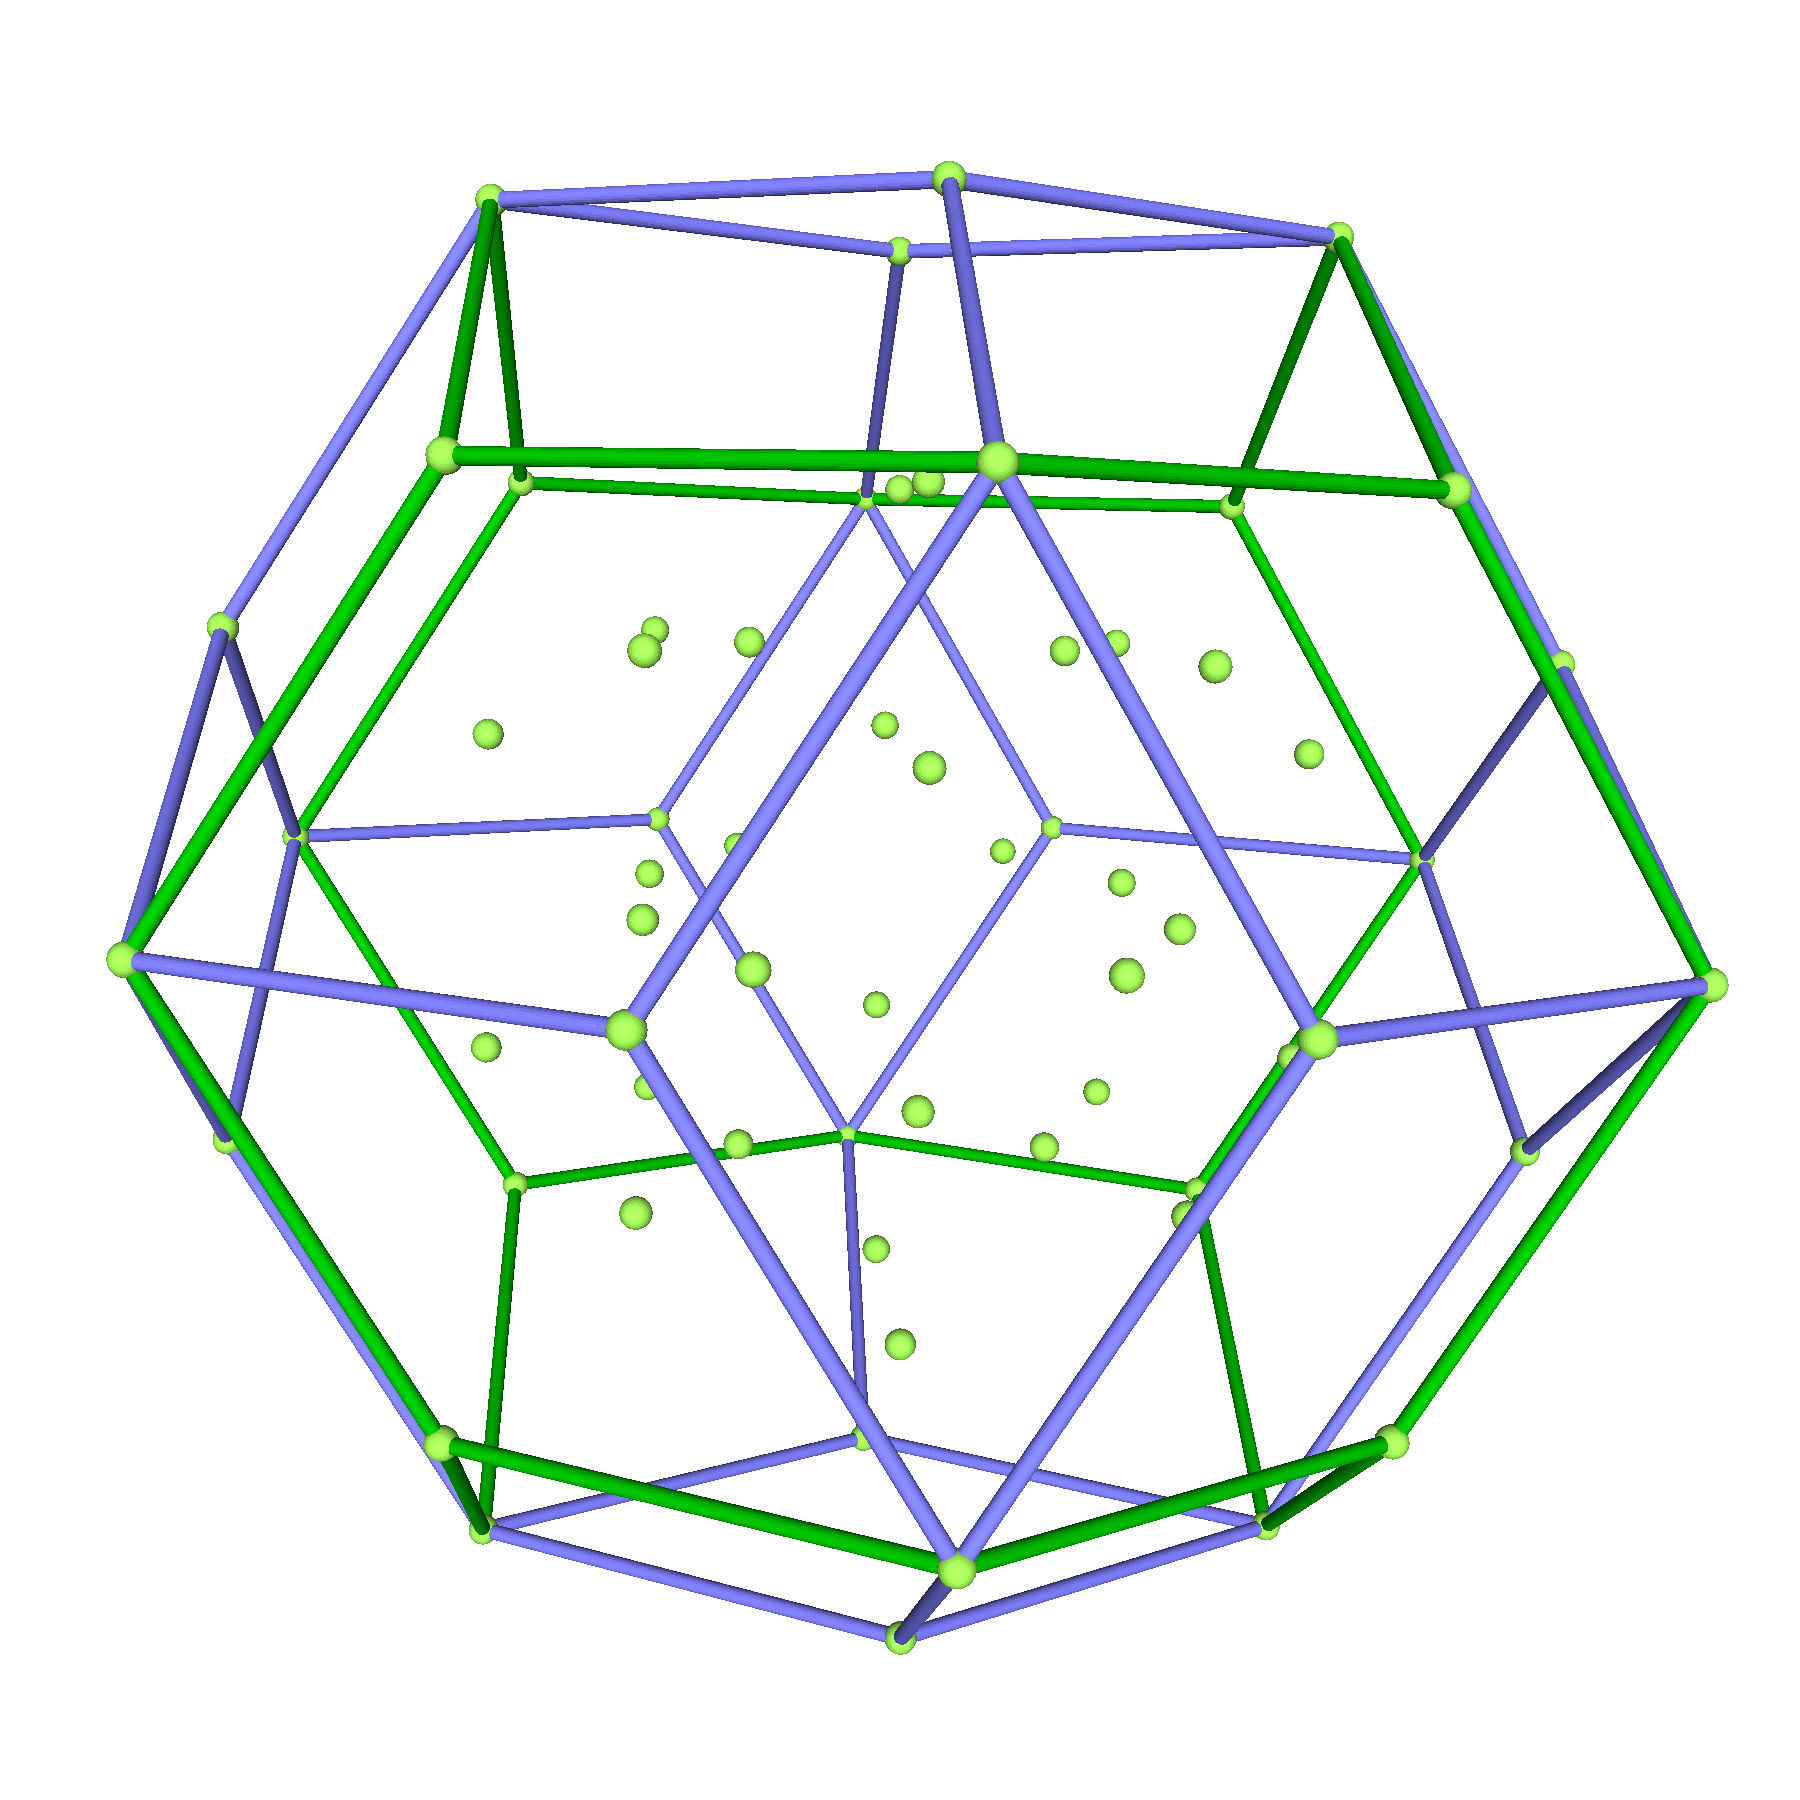 RhombicTricontahedron